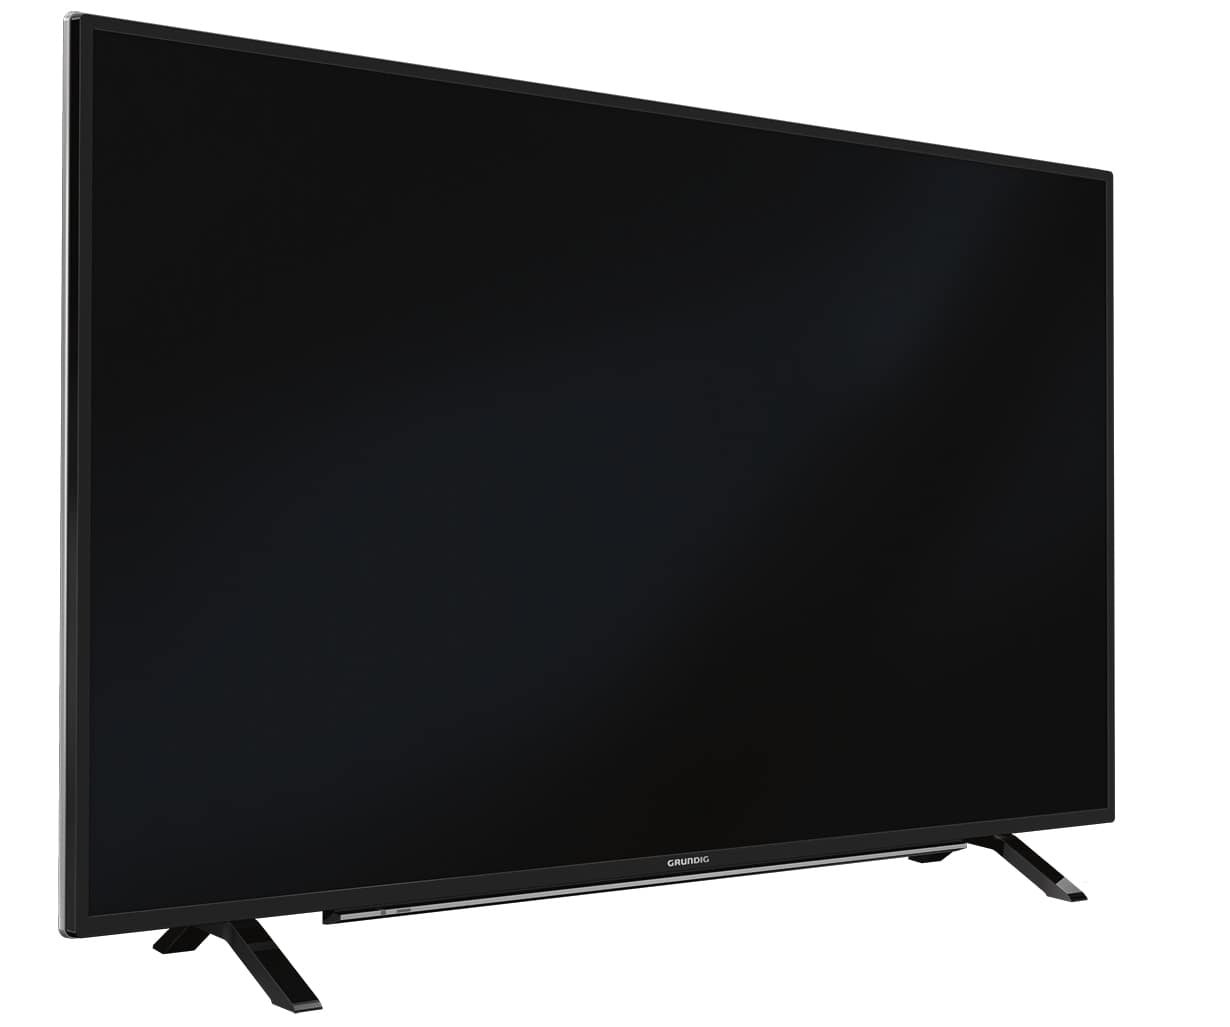 Grundig 40 GFB 6825 Smart-TV 102cm 40 Zoll LED Full-HD 800Hz A+ DVB-T2/C/S2 für 279,00 Euro